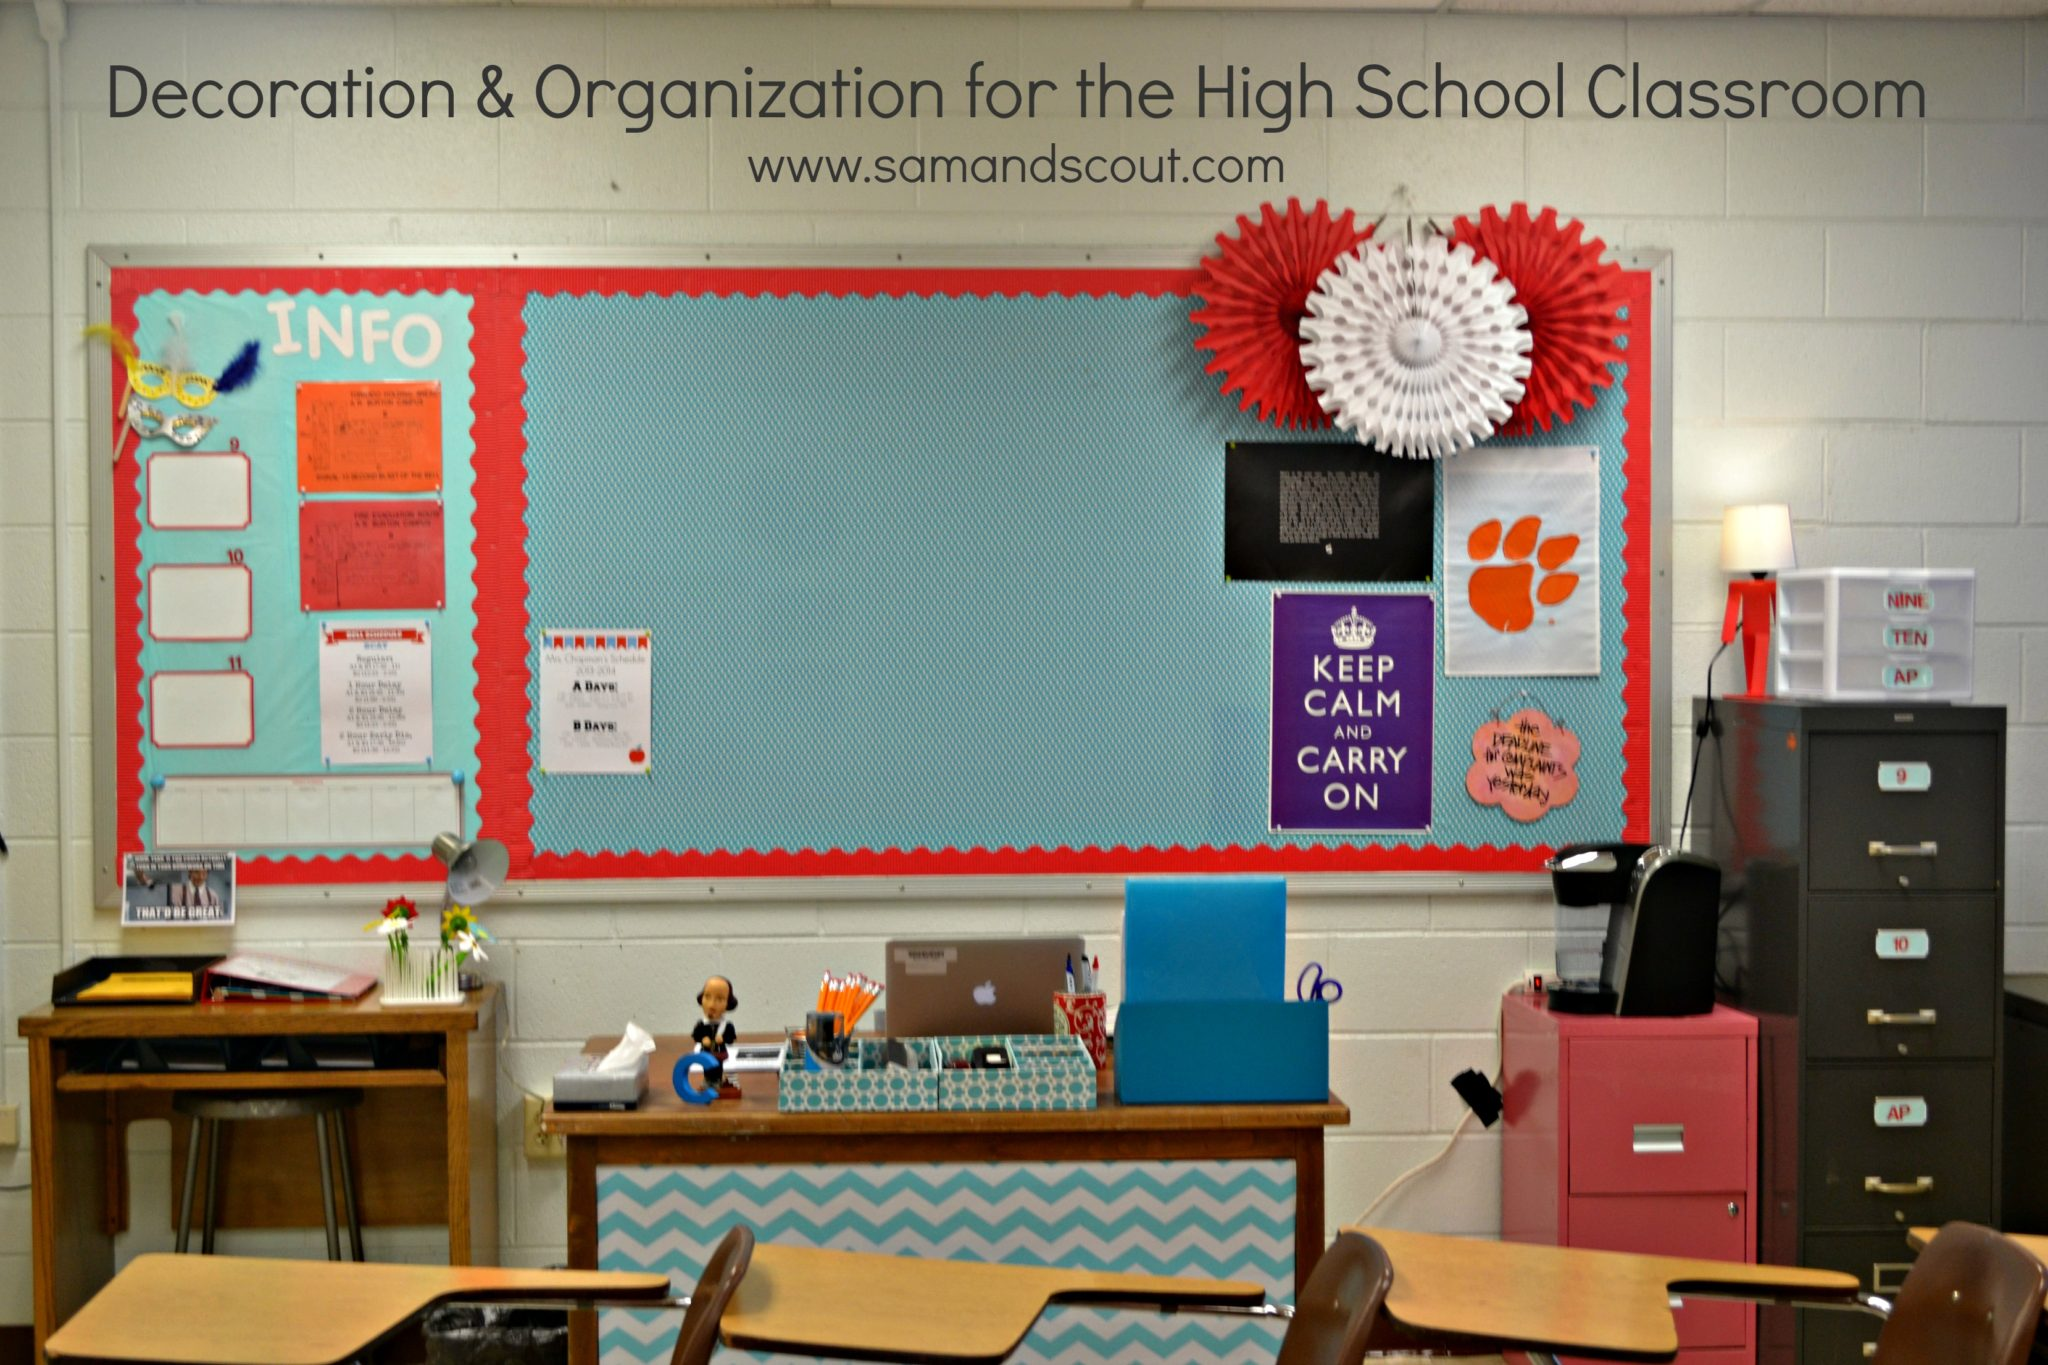 High School Biology Classroom Decorations ~ Decoration organization for the high school classroom